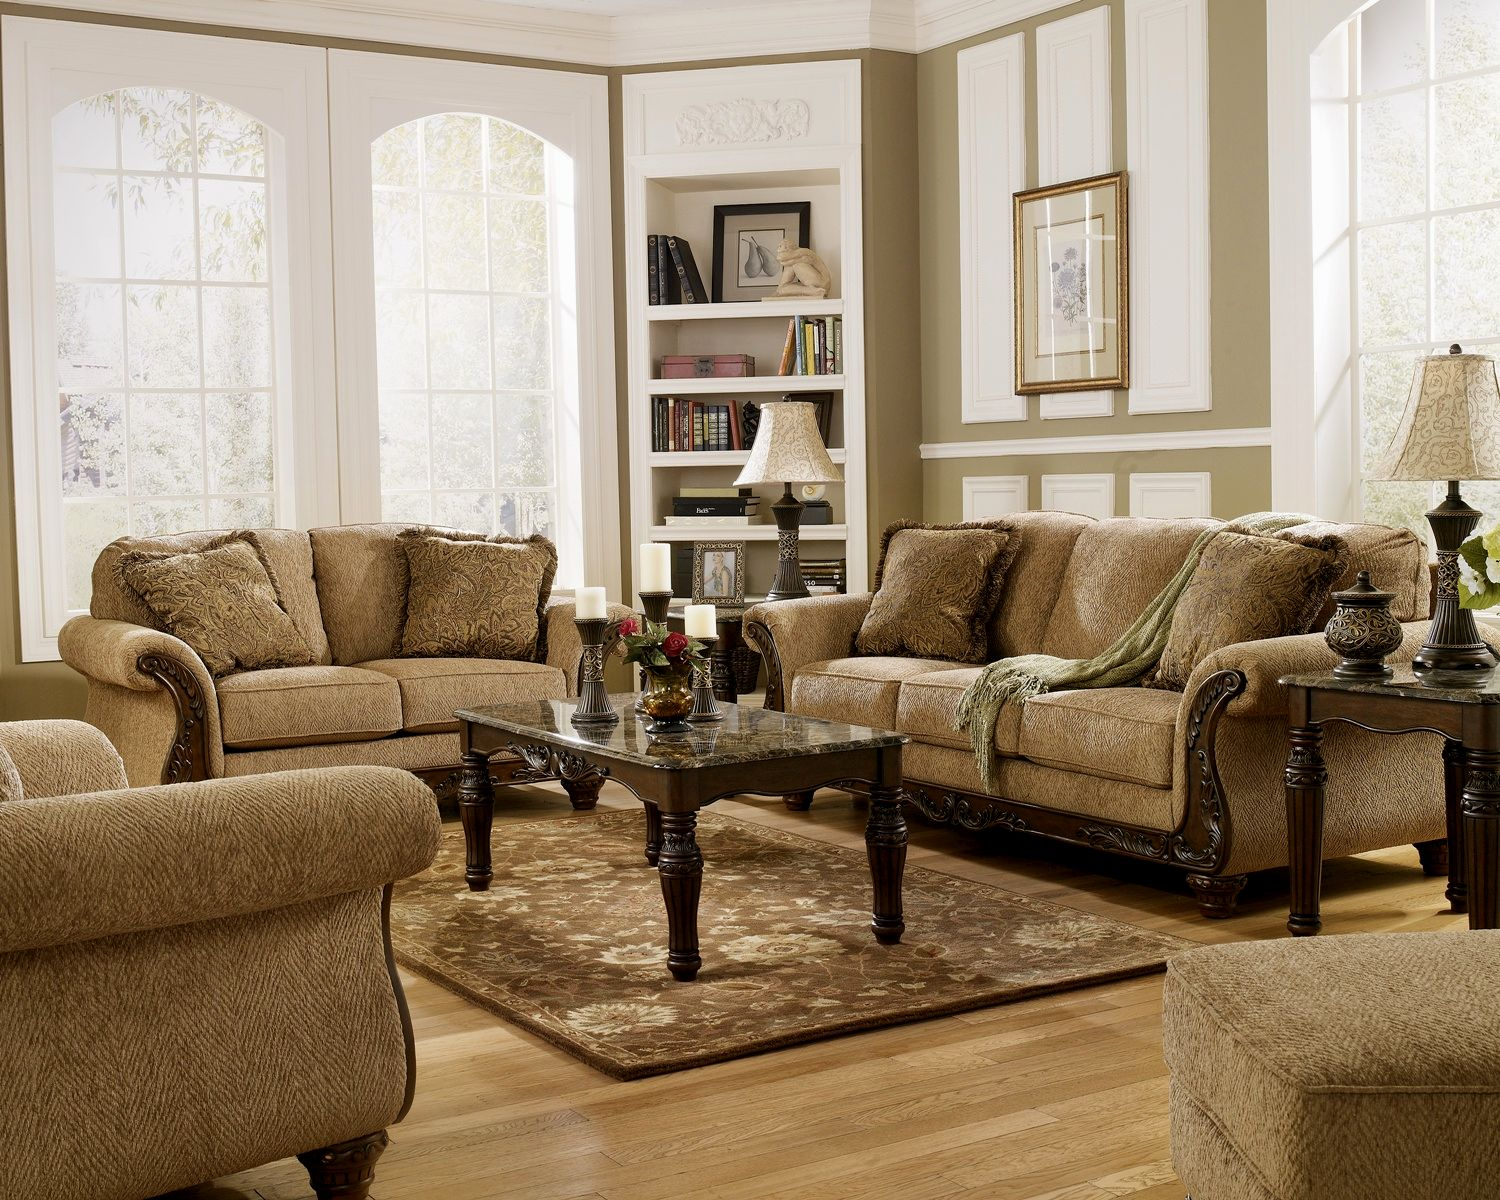 cool serta upholstery sofa construction-Stylish Serta Upholstery sofa Gallery